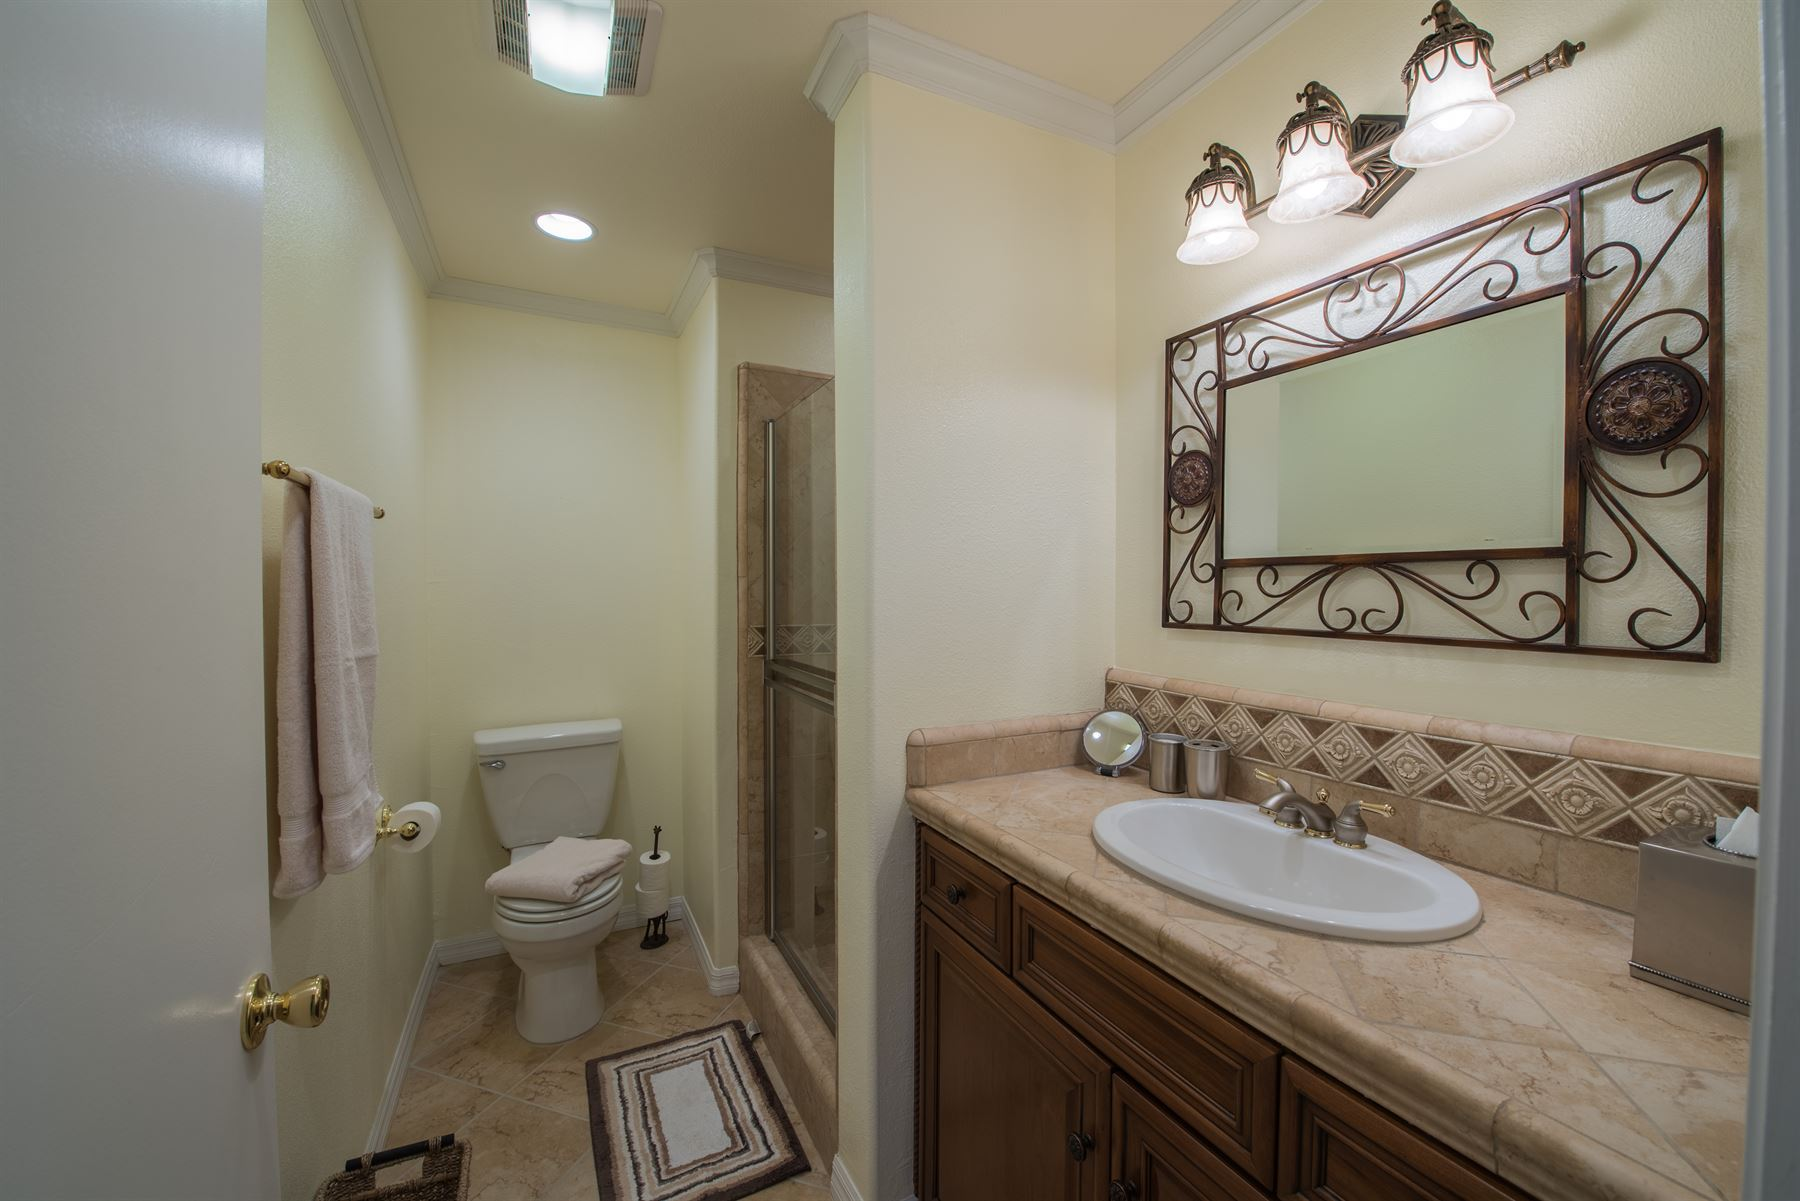 Golfer's Getaway - Interior - Bathroom with a single sink and a toilet along far wall and standing shower next to it